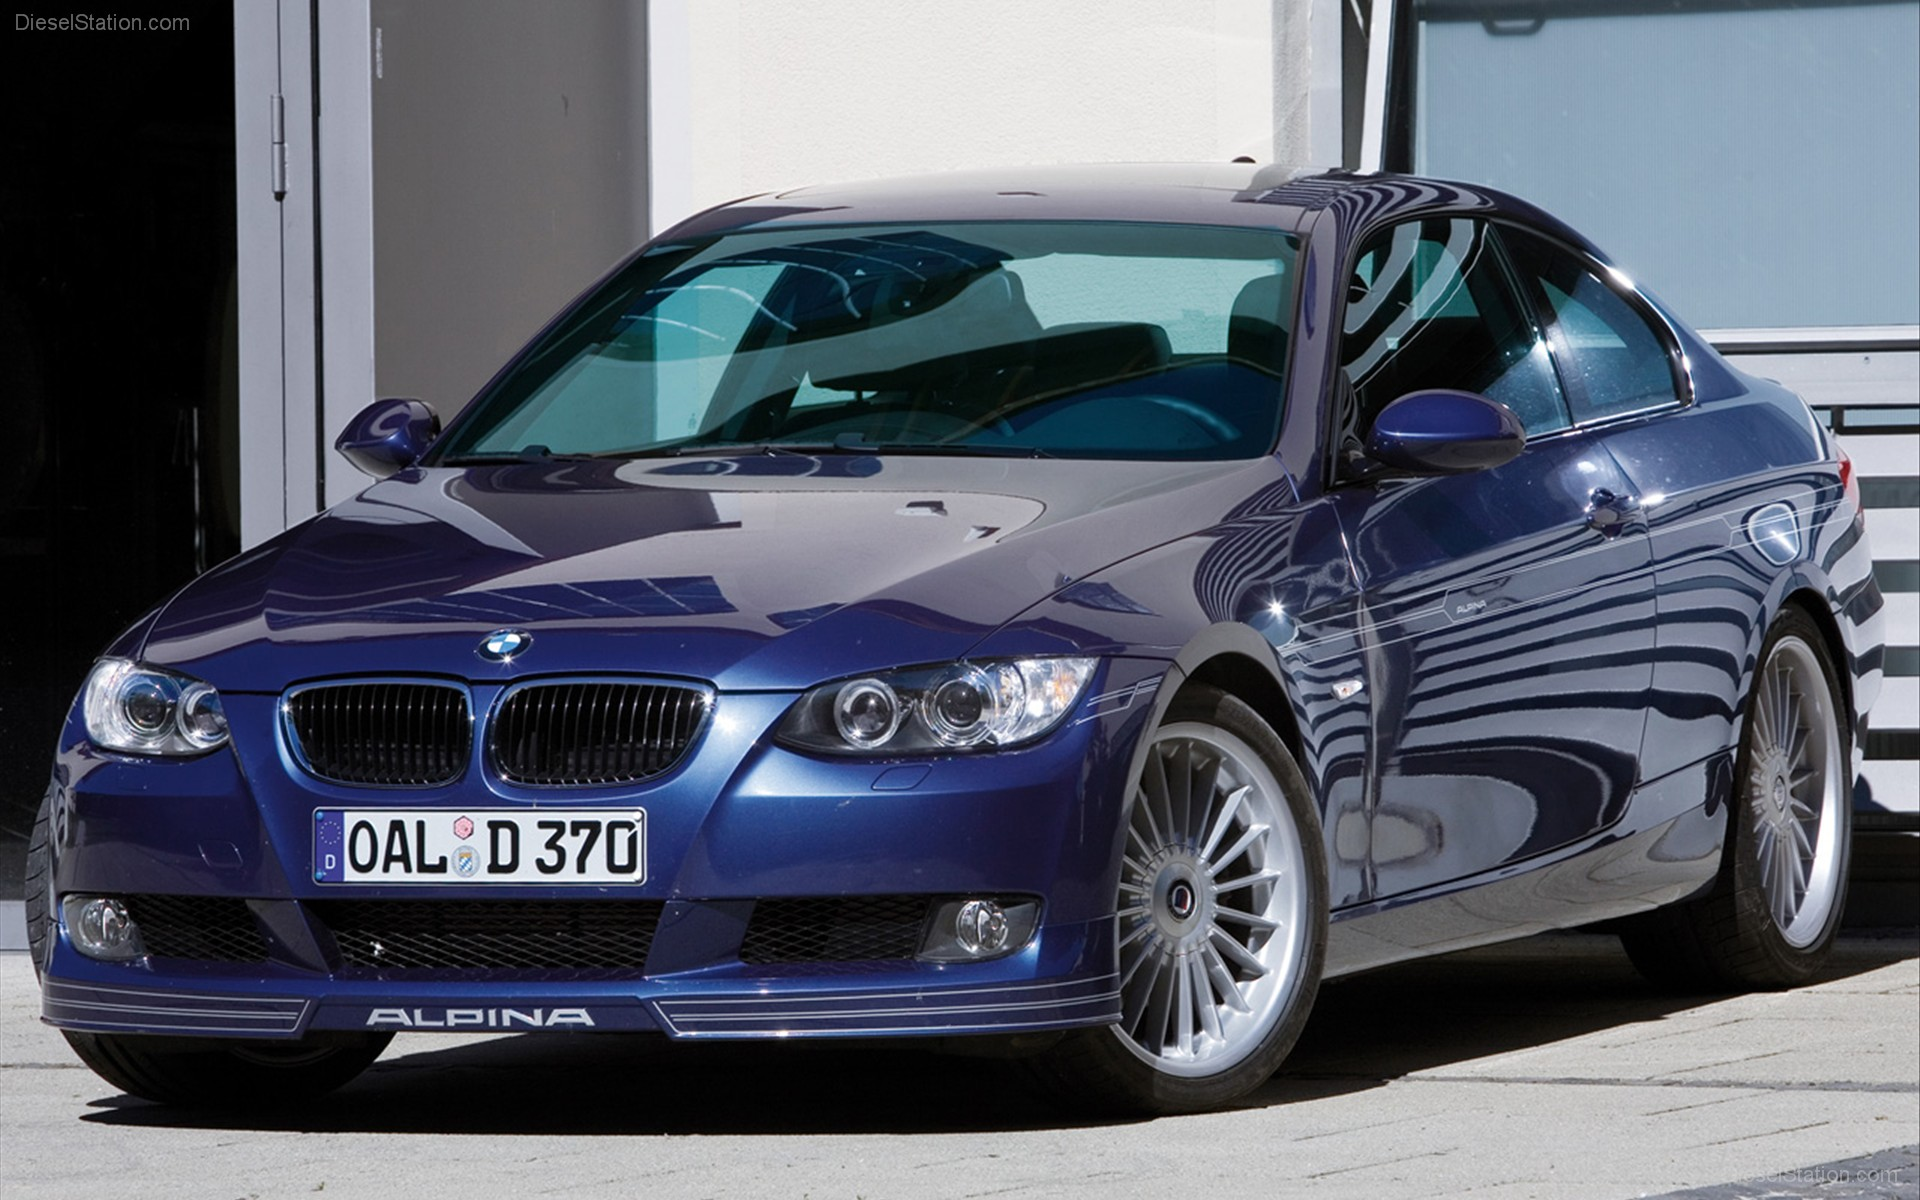 2009-BMW-Alpina-D3-Bi-Turbo-widescreen-05.jpg